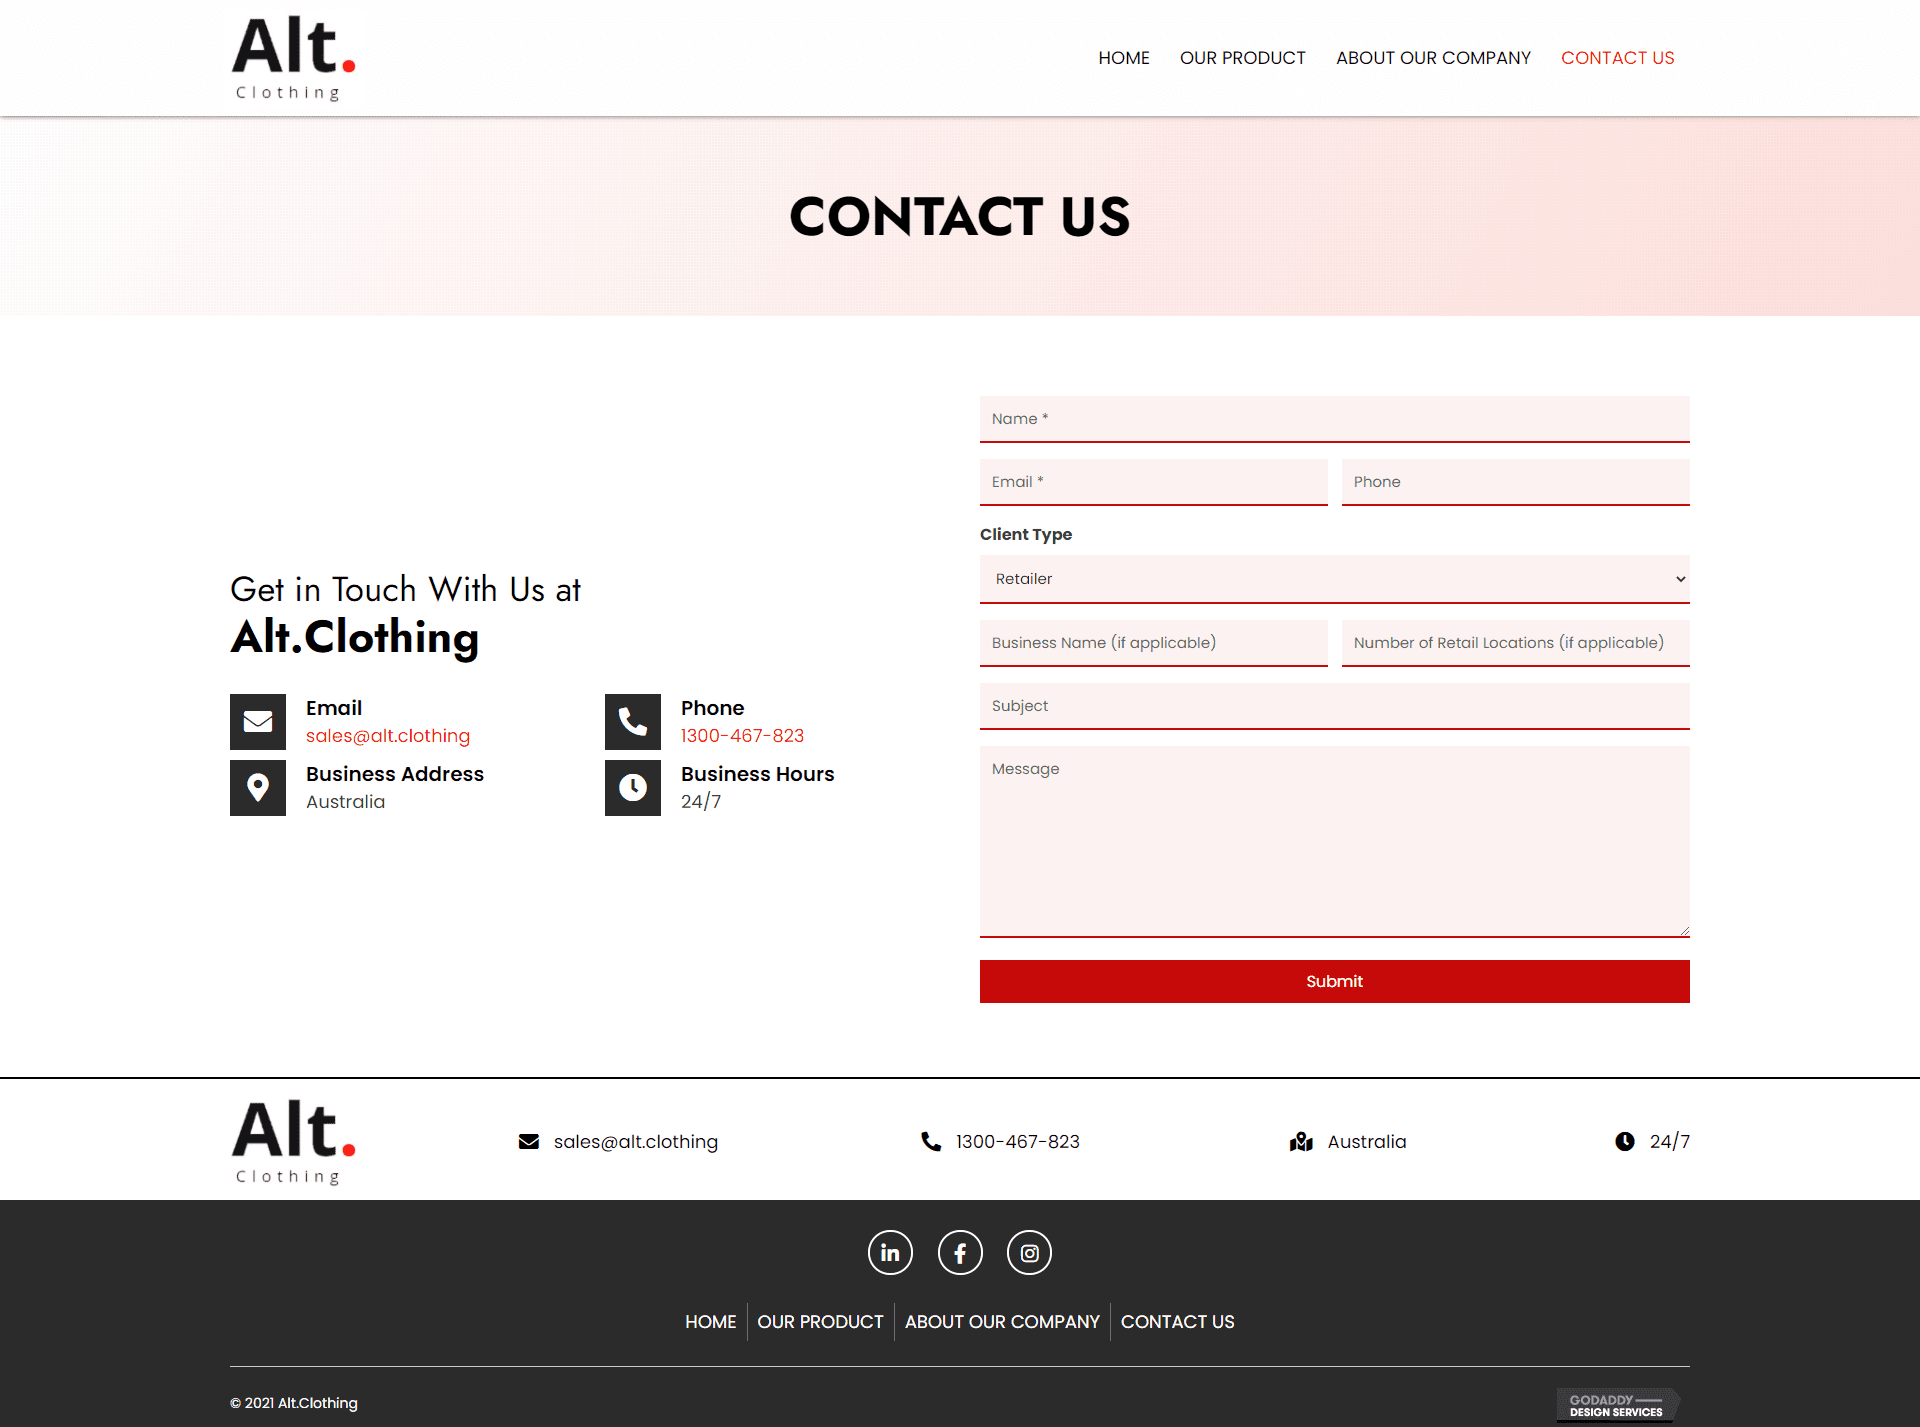 Alt.Clothing Contact